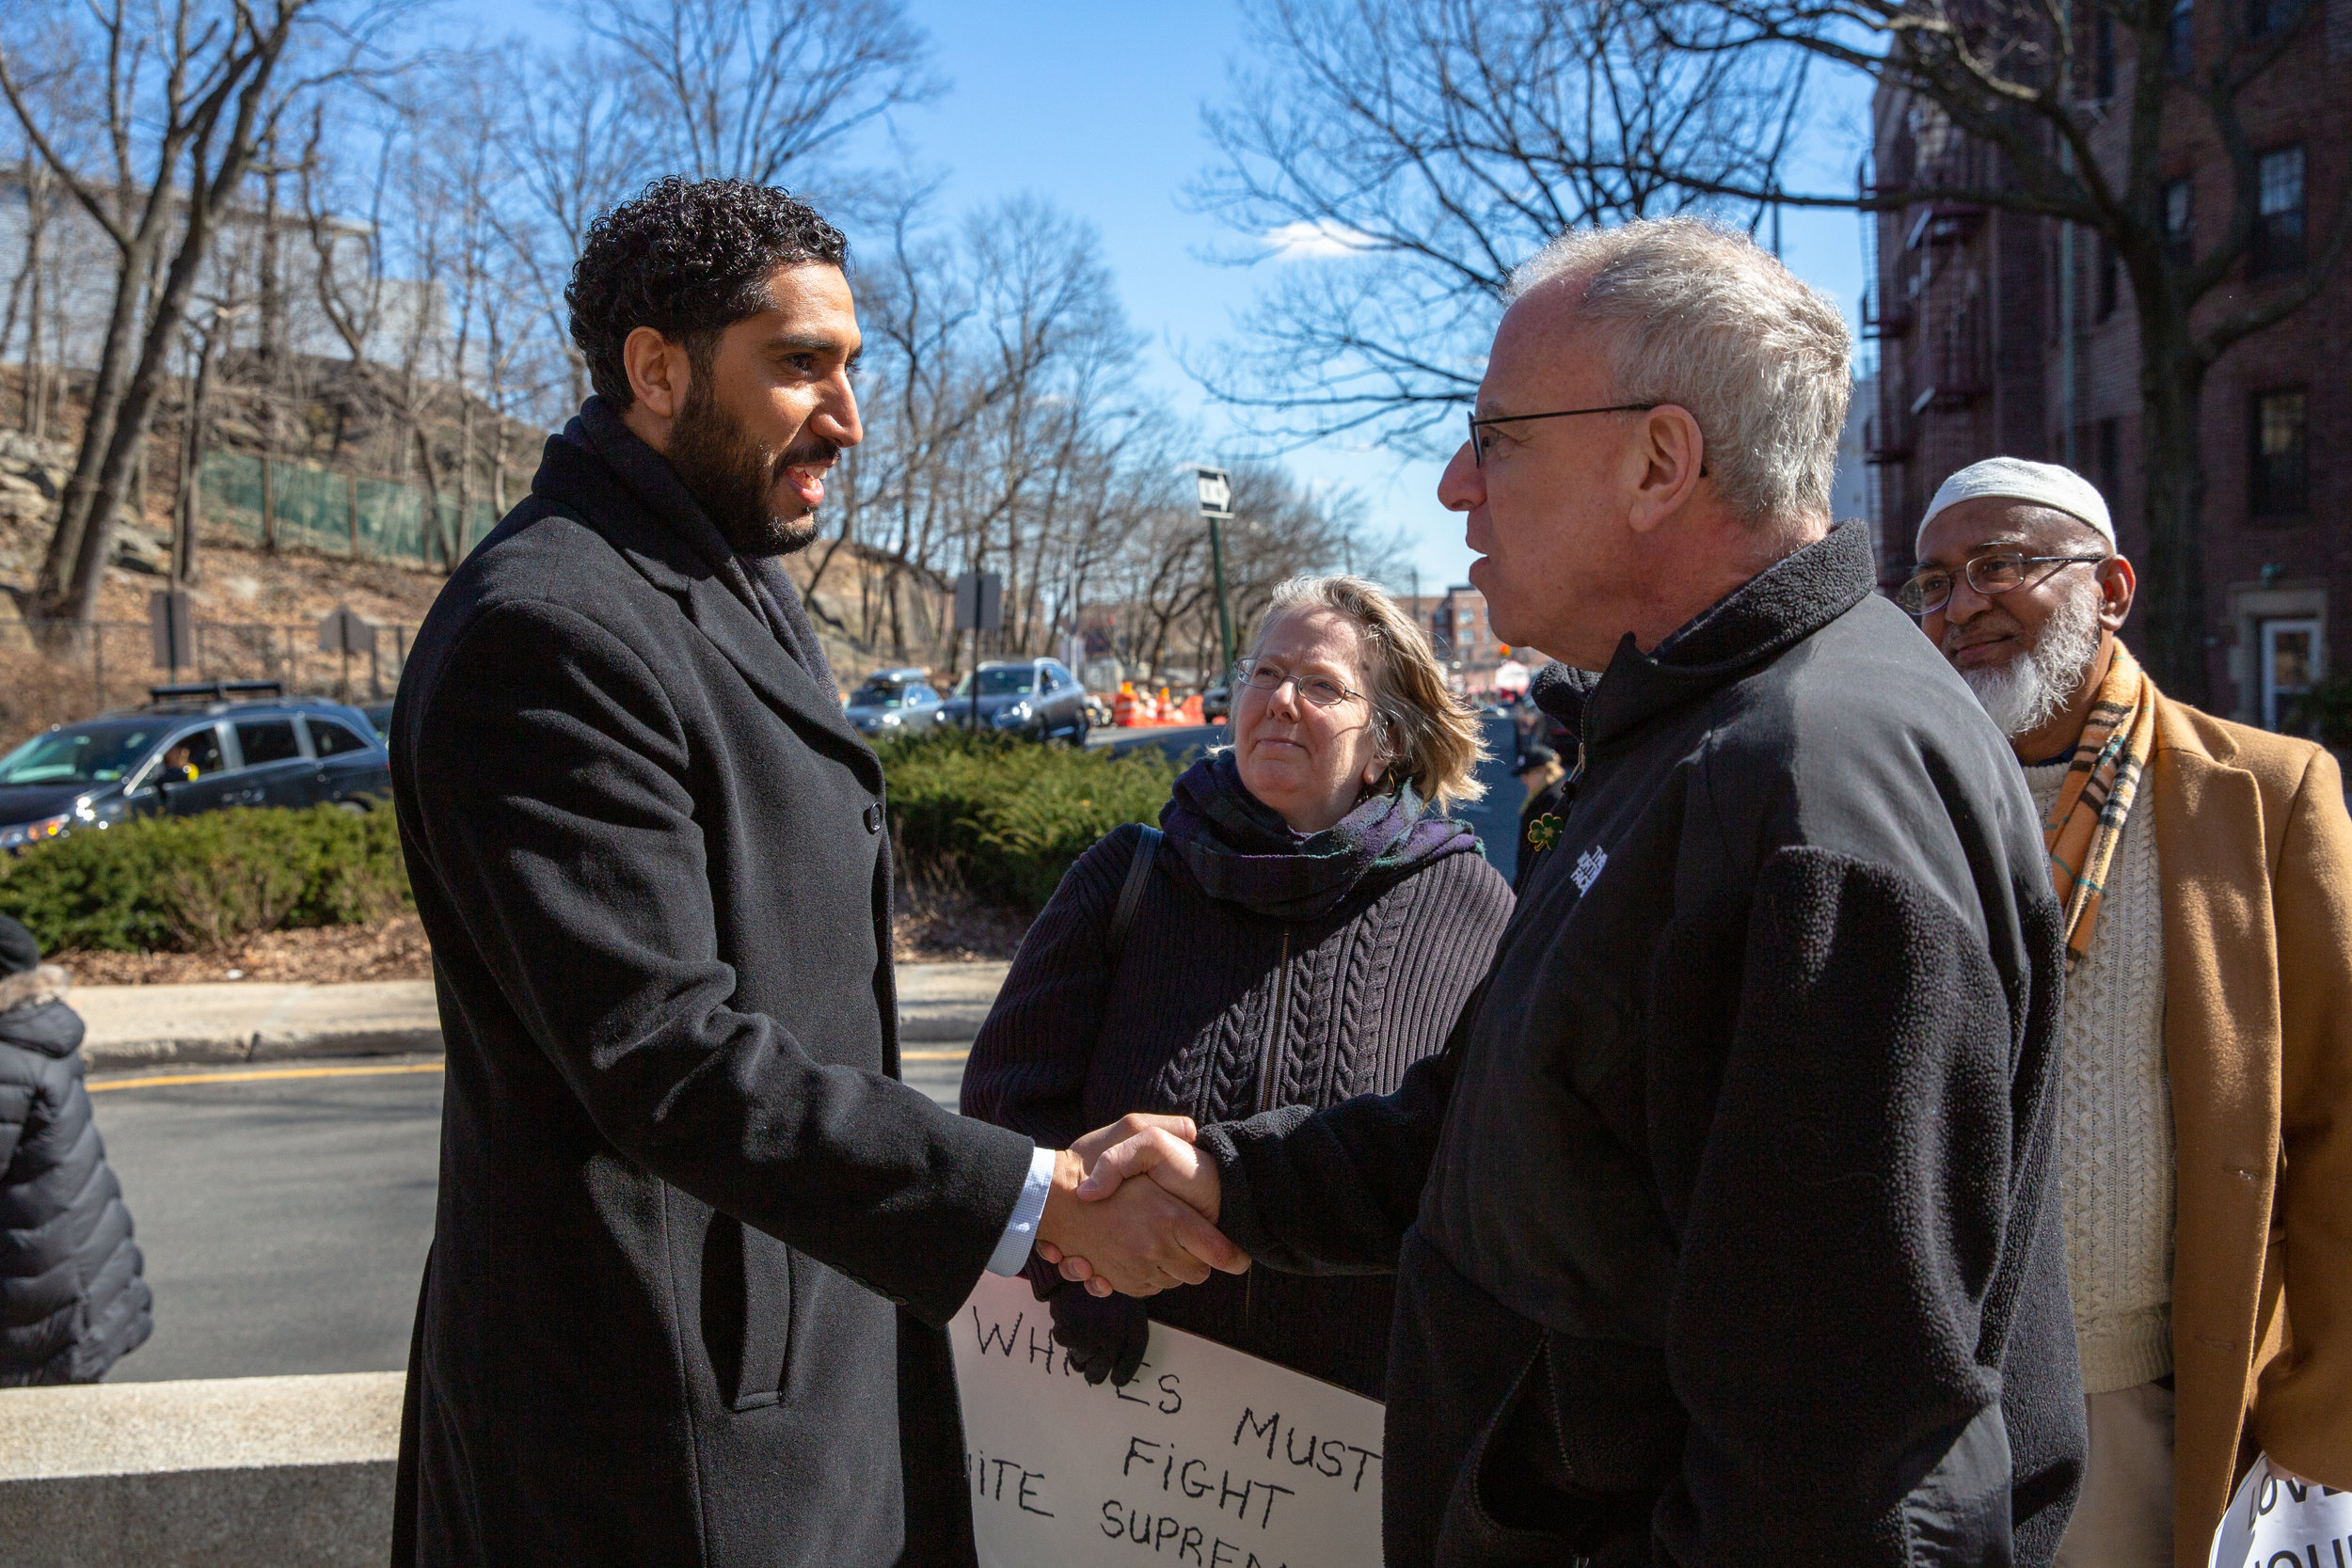 Yassine Taoufik, imam of the Abrar, shakes hands with Assemblyman Jeffrey Dinowitz at a vigil for the victims of the New Zealand massacre. Community members and religious leaders gathered at the Riverdale Monument to honor the memories of the 50 victims who died in a shooting rampage at two mosques in Christchurch on March 15.  Shot on assignment for The Riverdale Press .